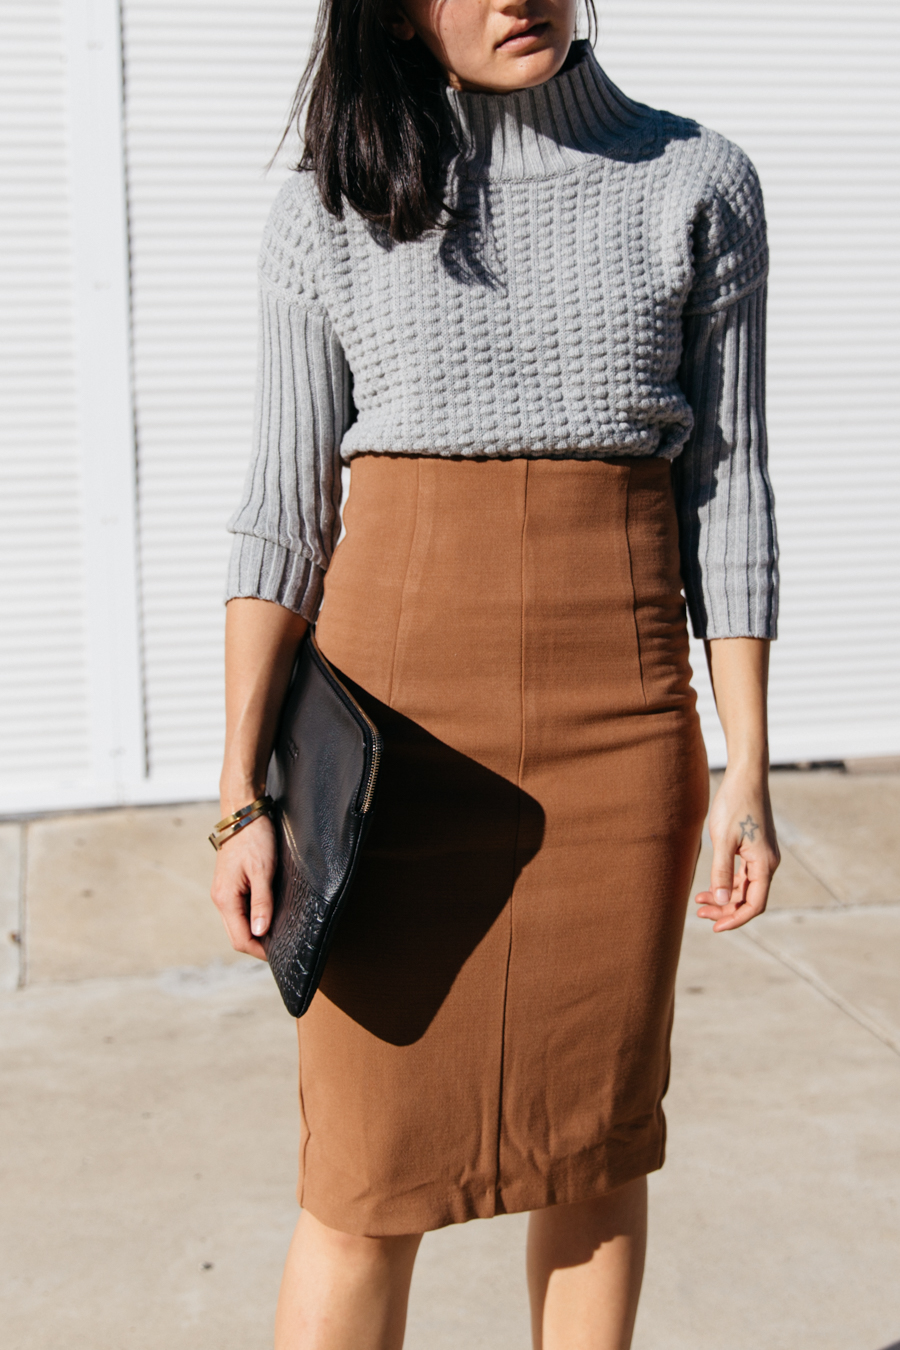 Stylish office wear ideas. Office outfits for work.